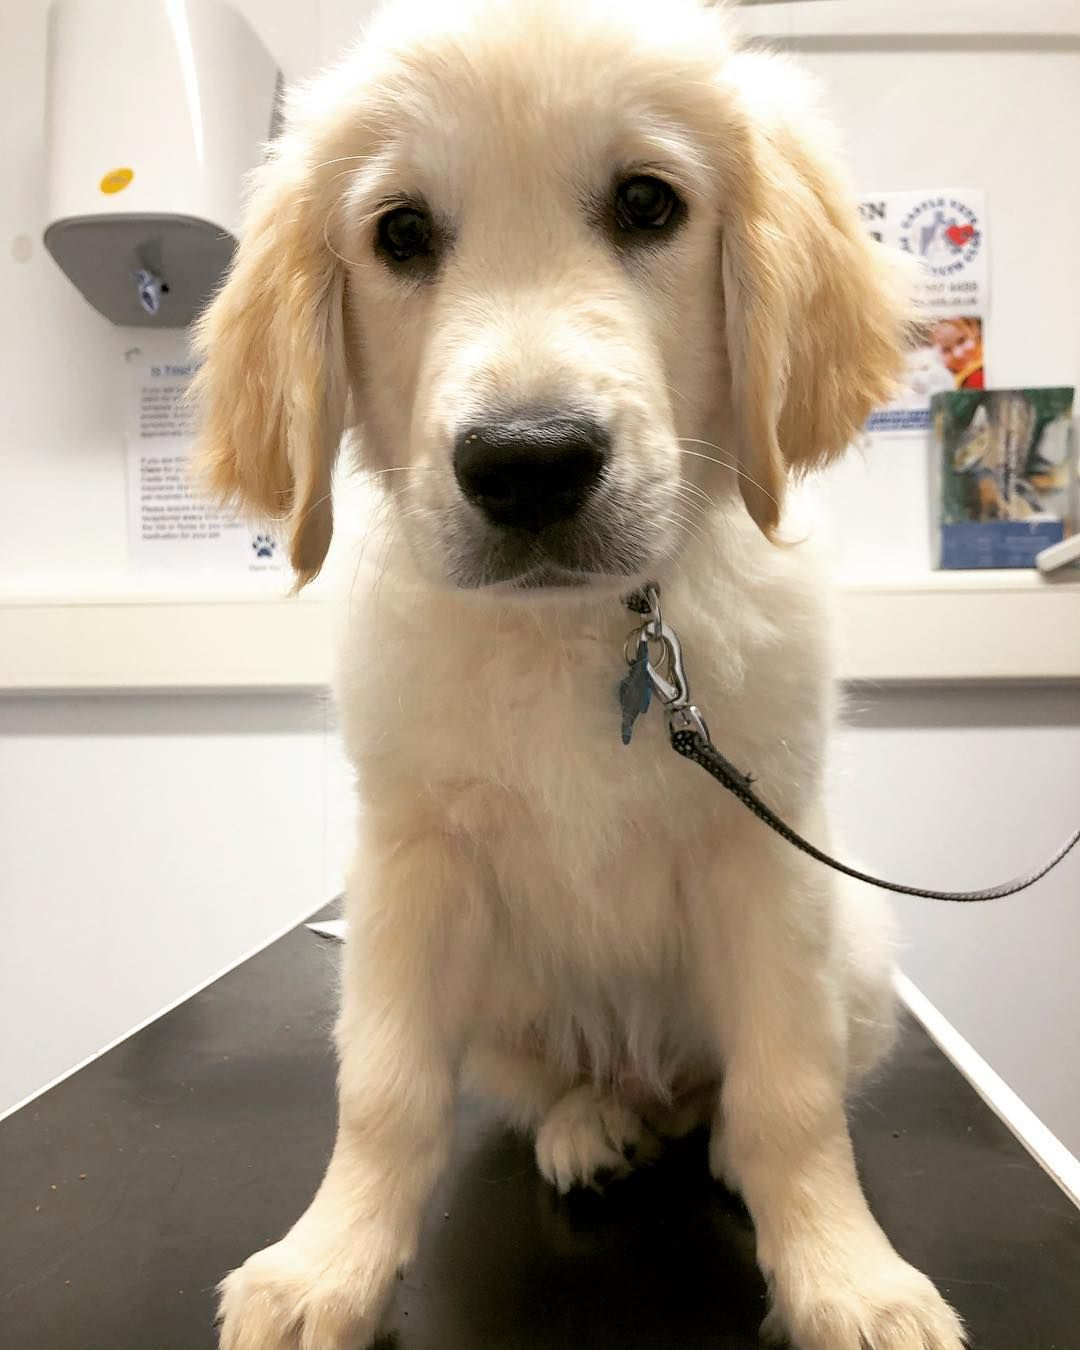 Harry The Golden Retriever Came In For His Vaccs And A Cuddle